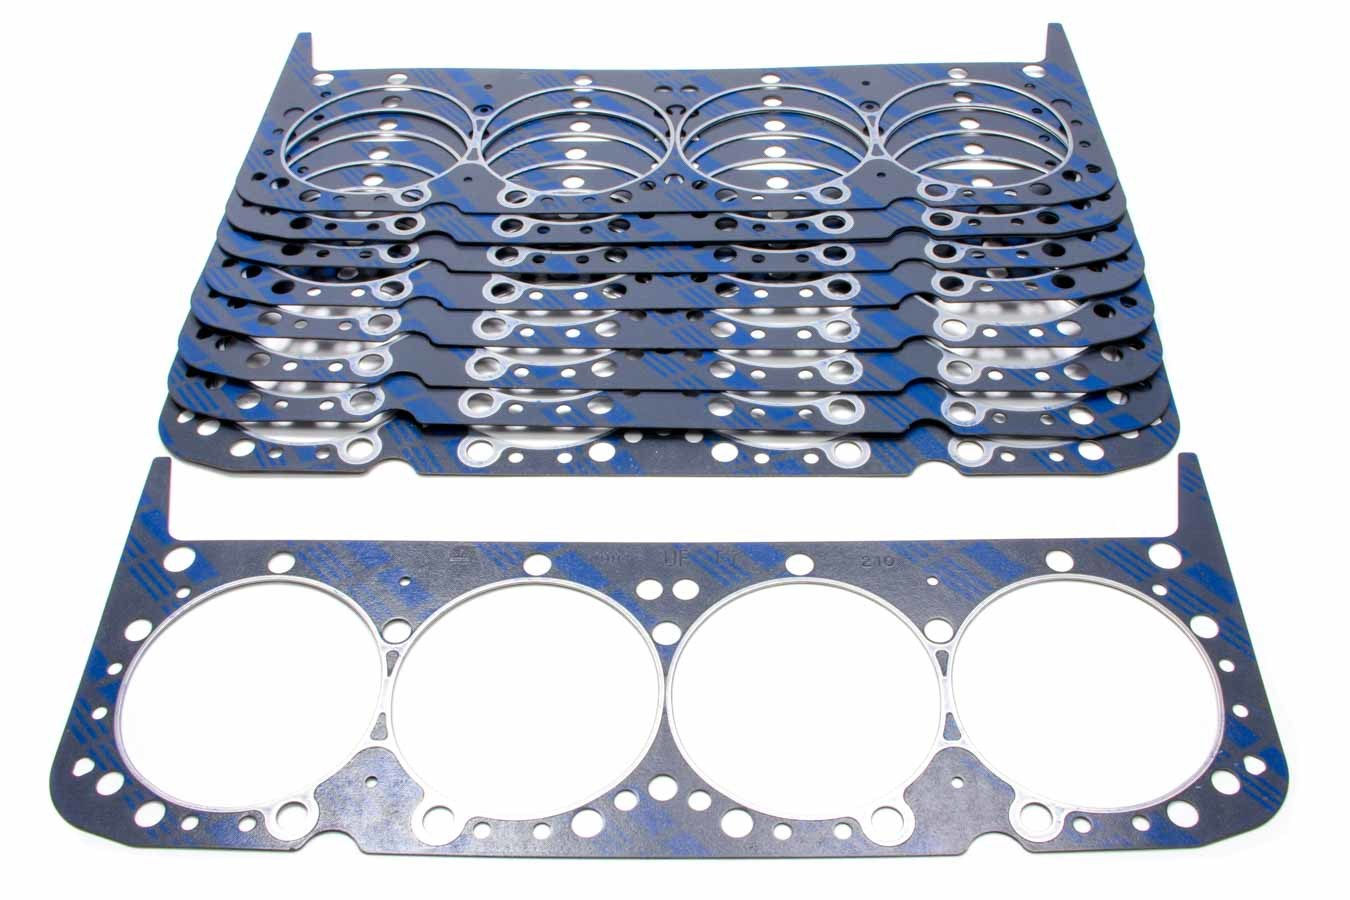 Fel-Pro 1004B Cylinder Head Gasket, 4.190 in Bore, 0.041 in Compression Thickness, Steel Core Laminate, Small Block Chevy, Set of 10